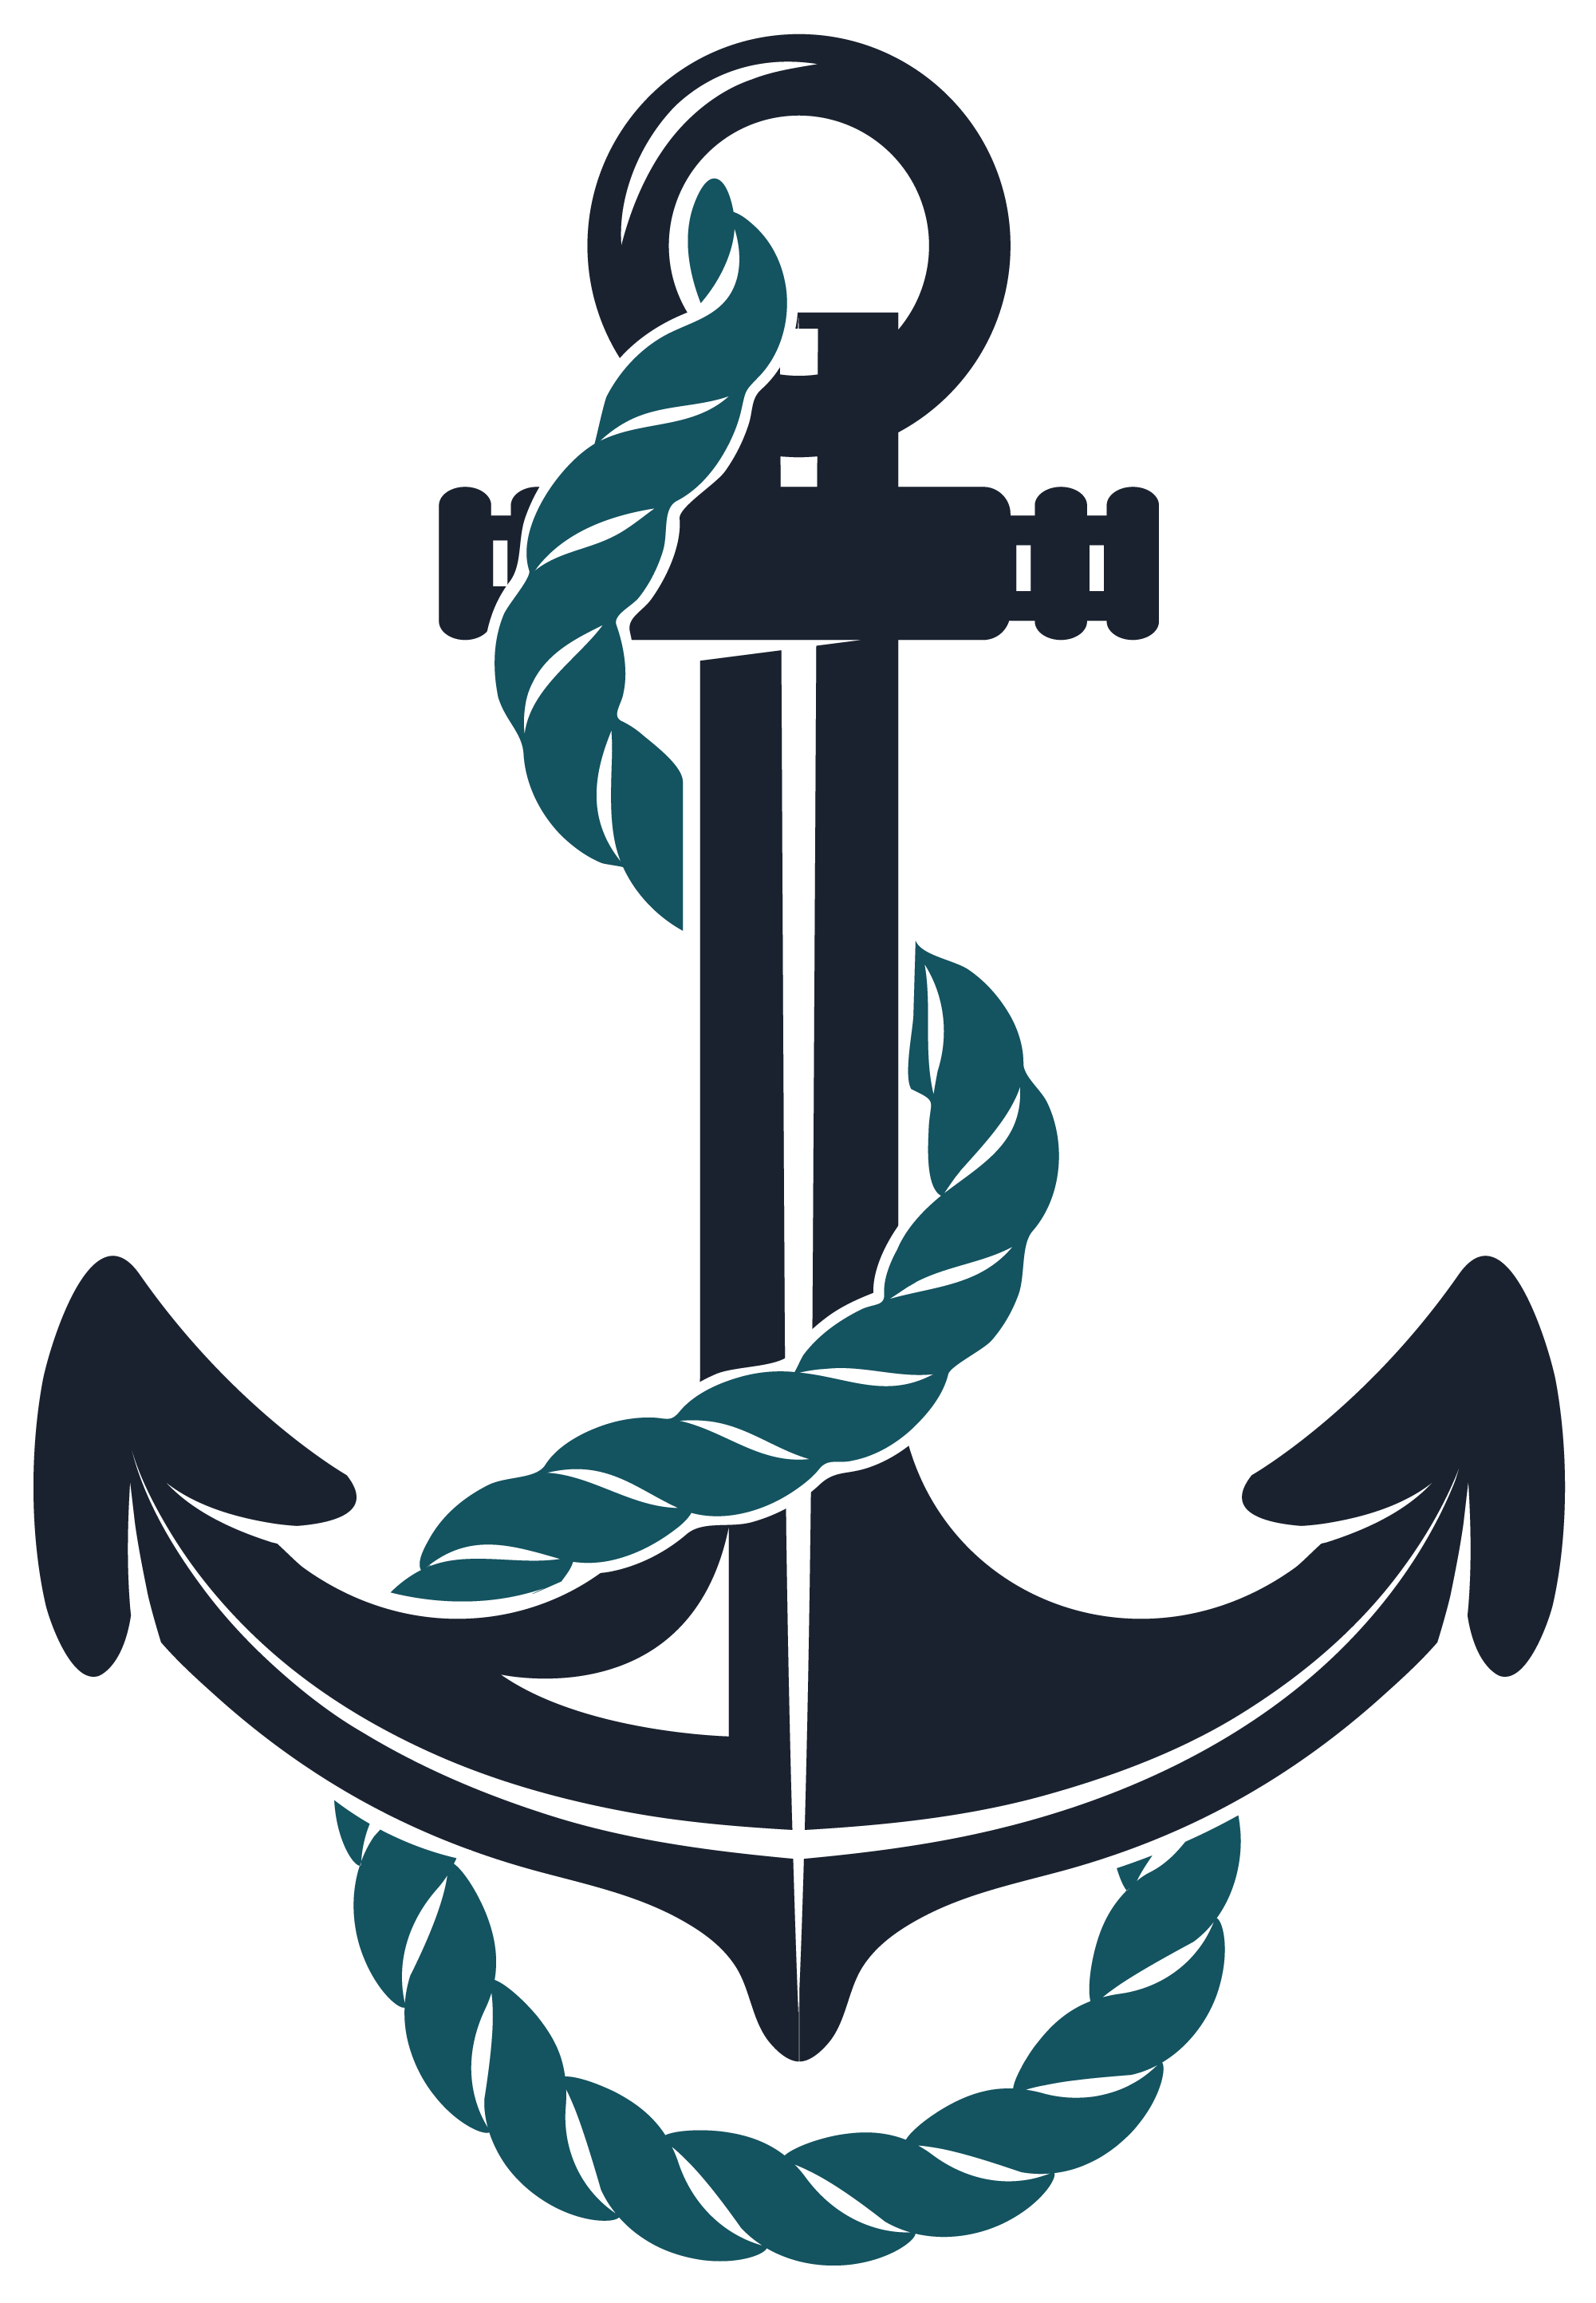 Clipart anchor rope. Clip art hand painted